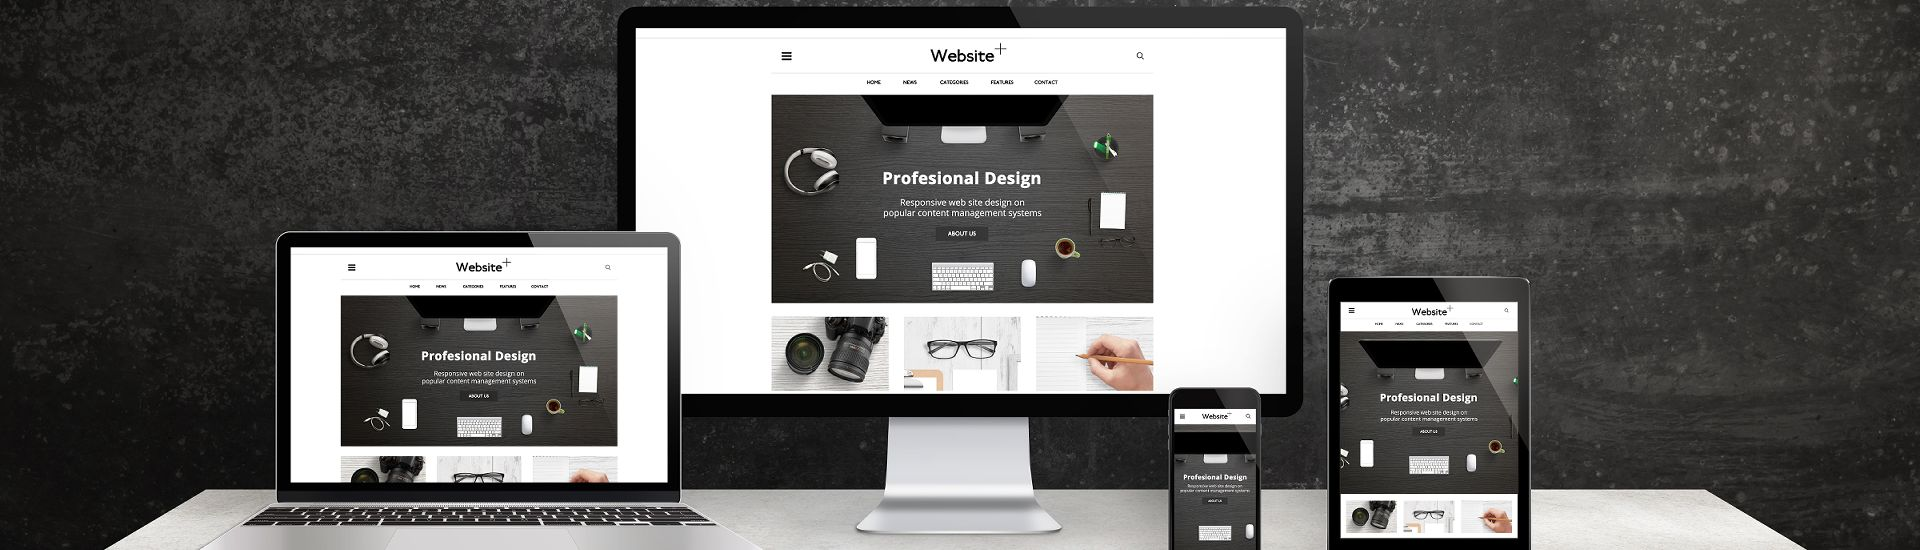 Website Design Services Port Douglas Australia